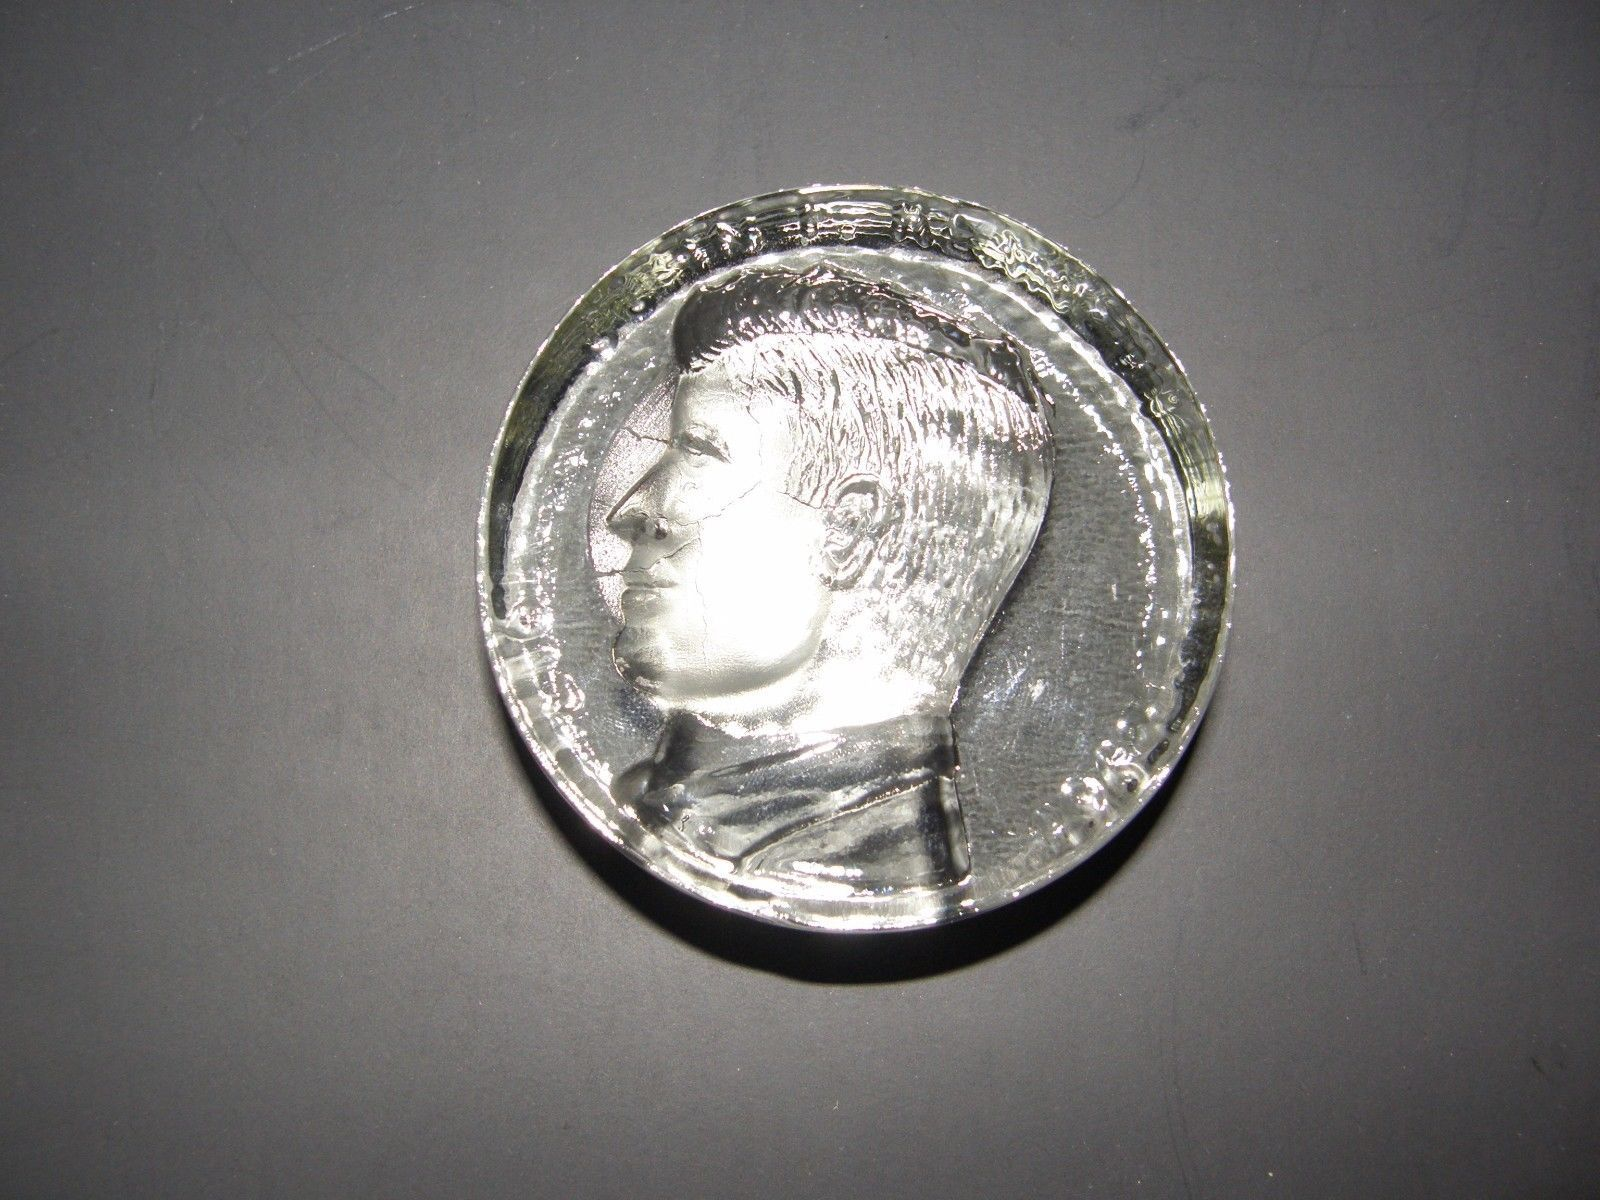 Primary image for JFK JOHN F. KENNEDY HALF DOLLAR CLEAR GLASS PAPERWEIGHT COLLECTIBLE